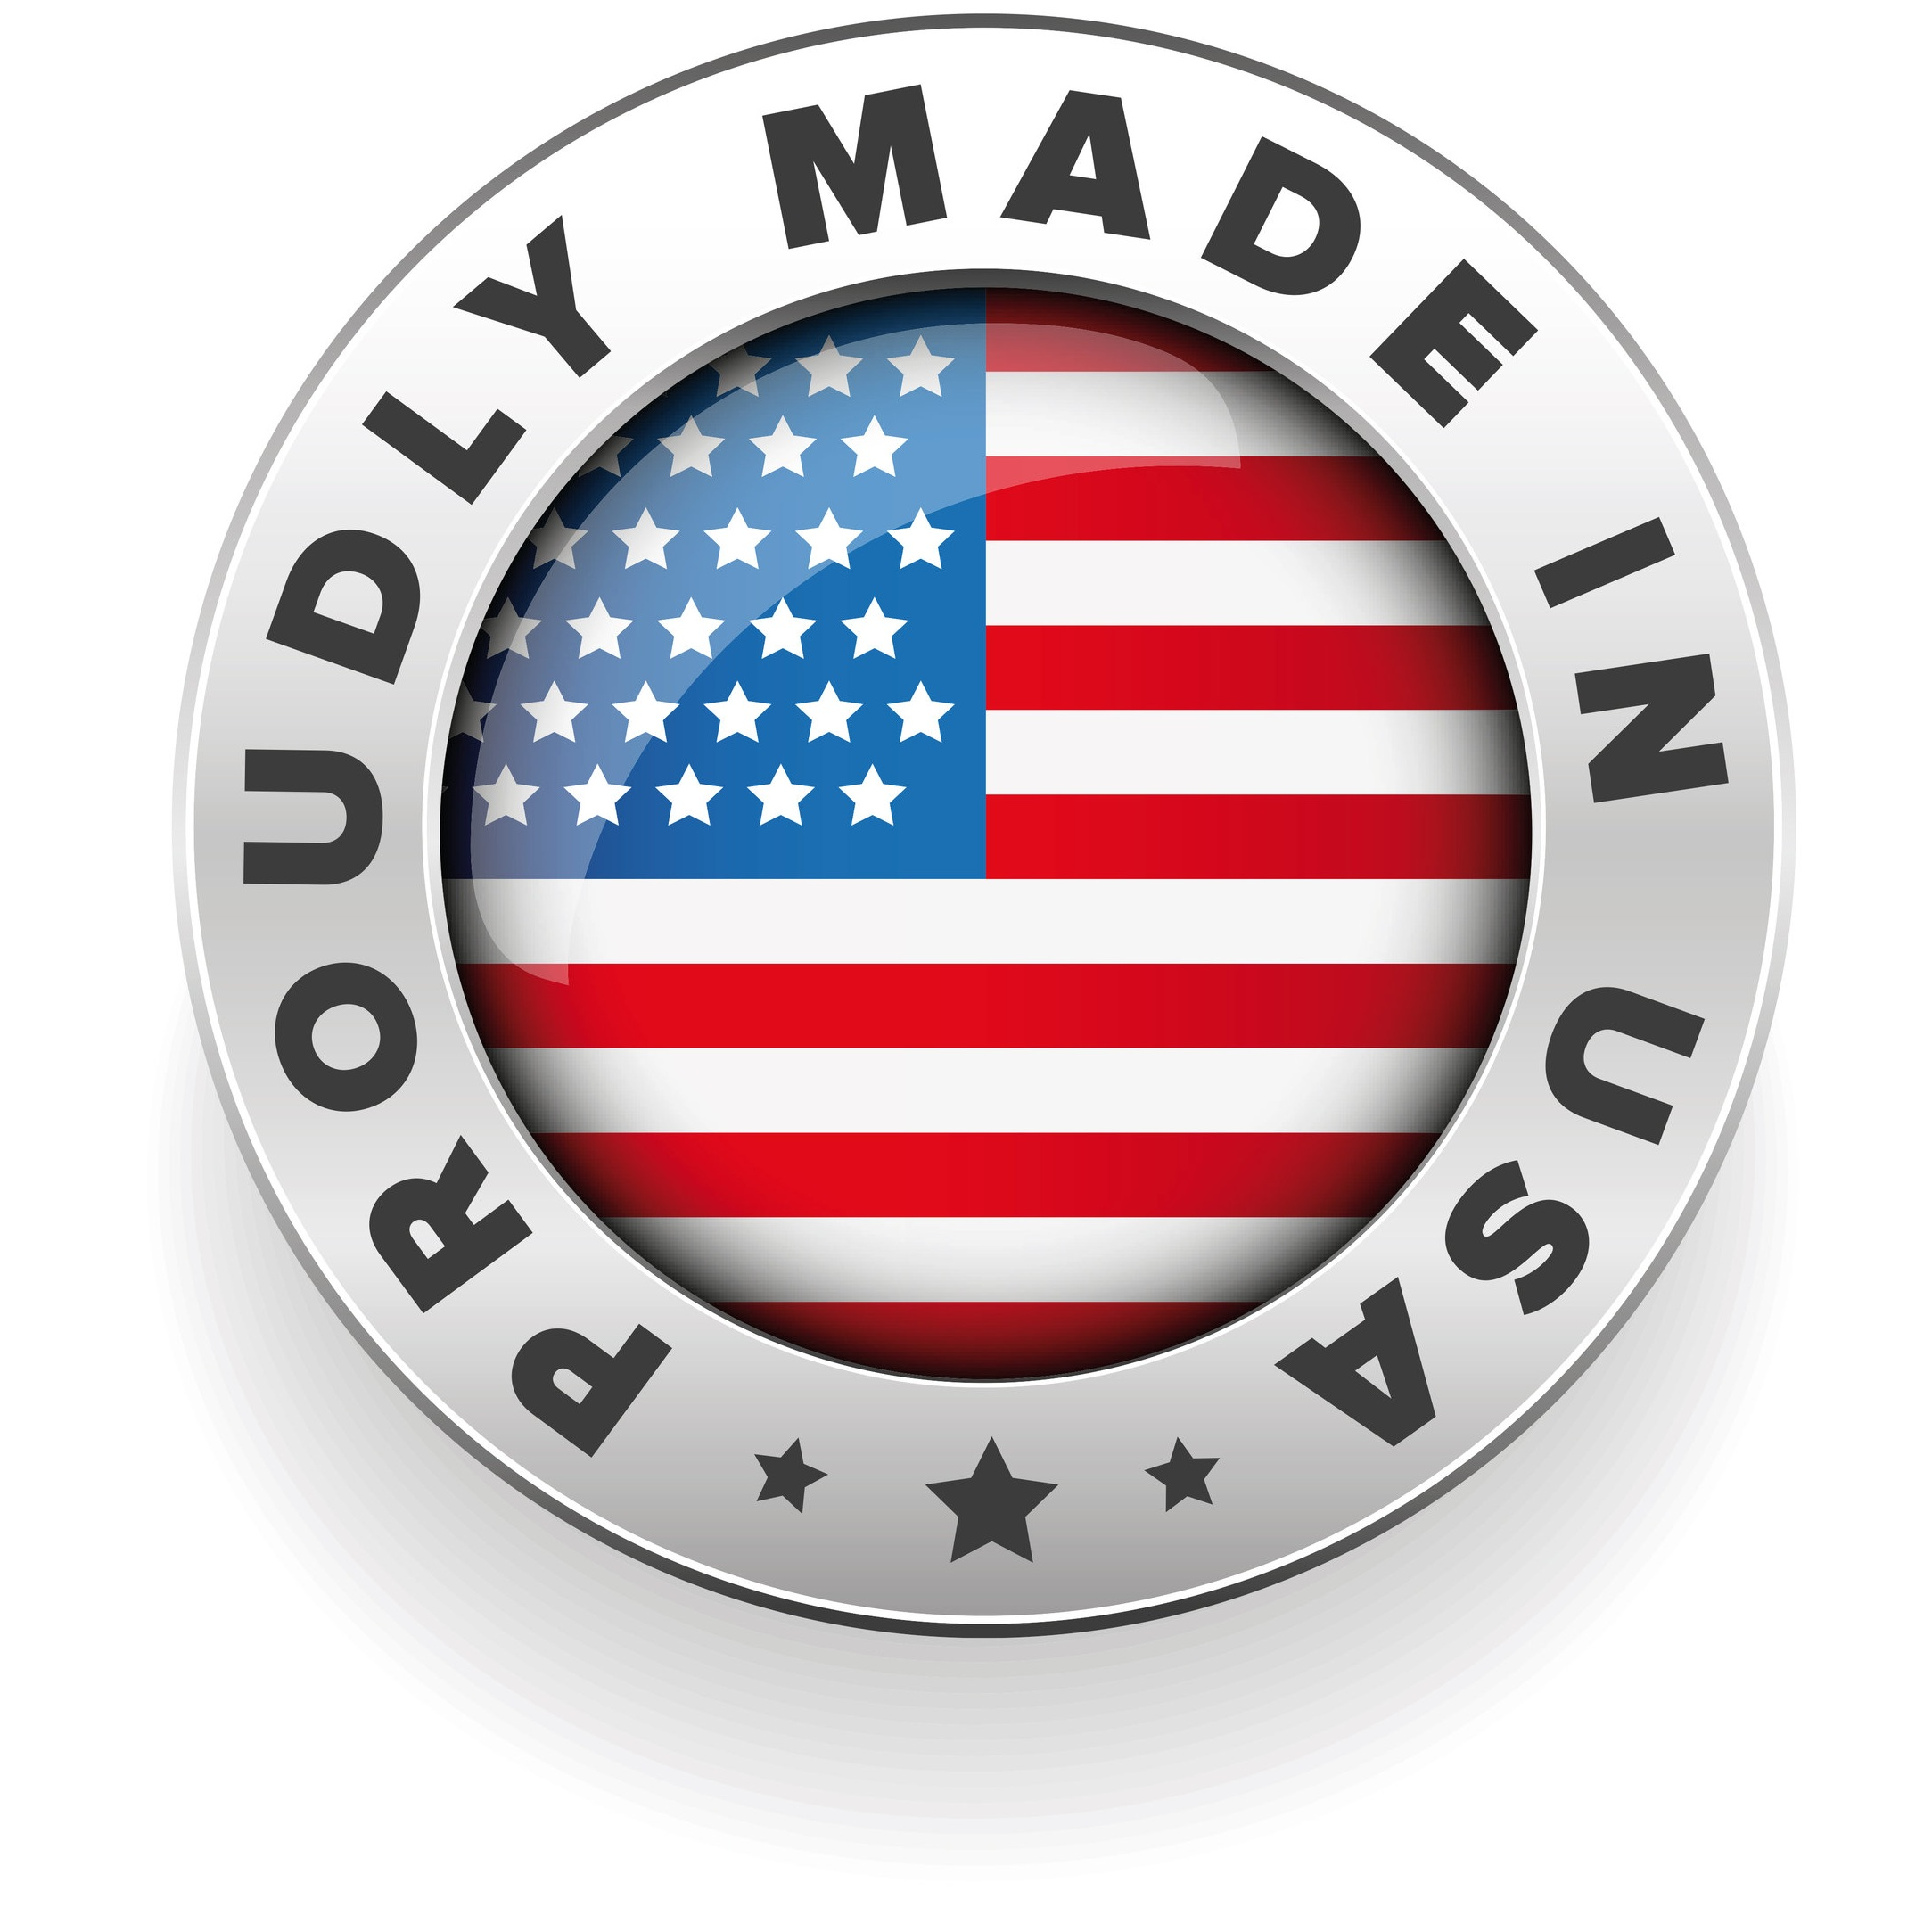 Proudly made in USA badge